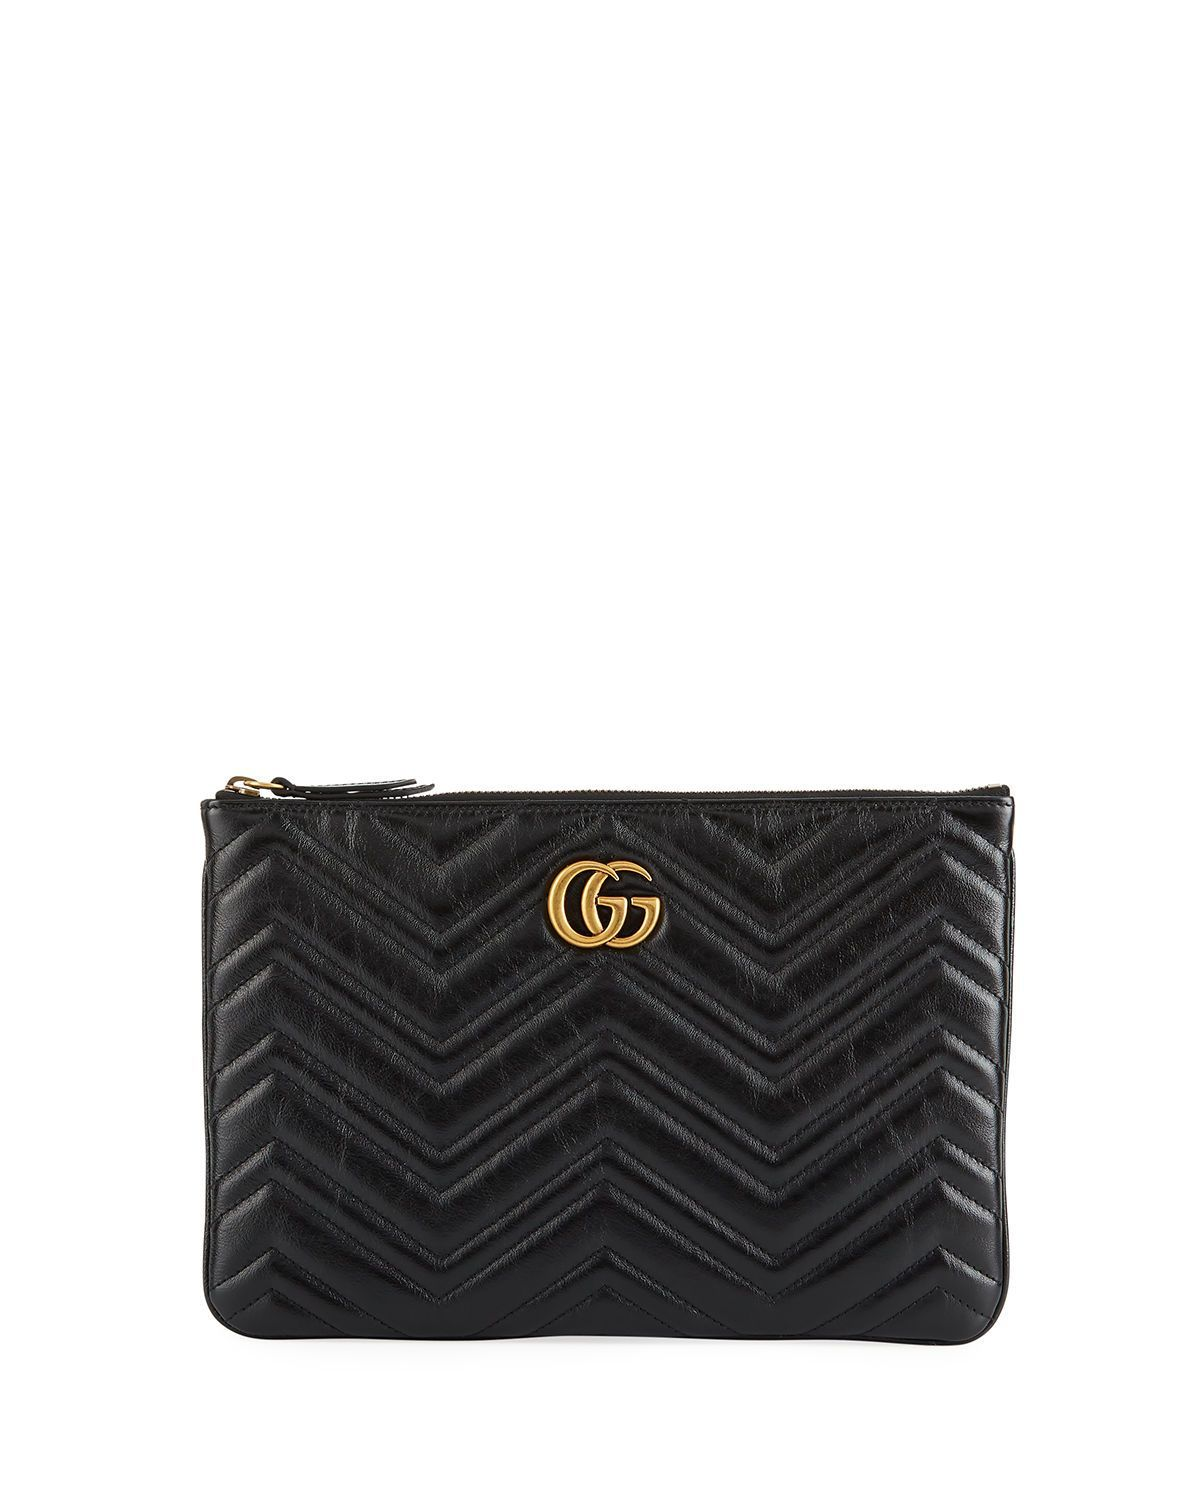 800b5ab7a GG Marmont Quilted Leather Zip Pouch Bag #guccipouchbag | Handbags ...